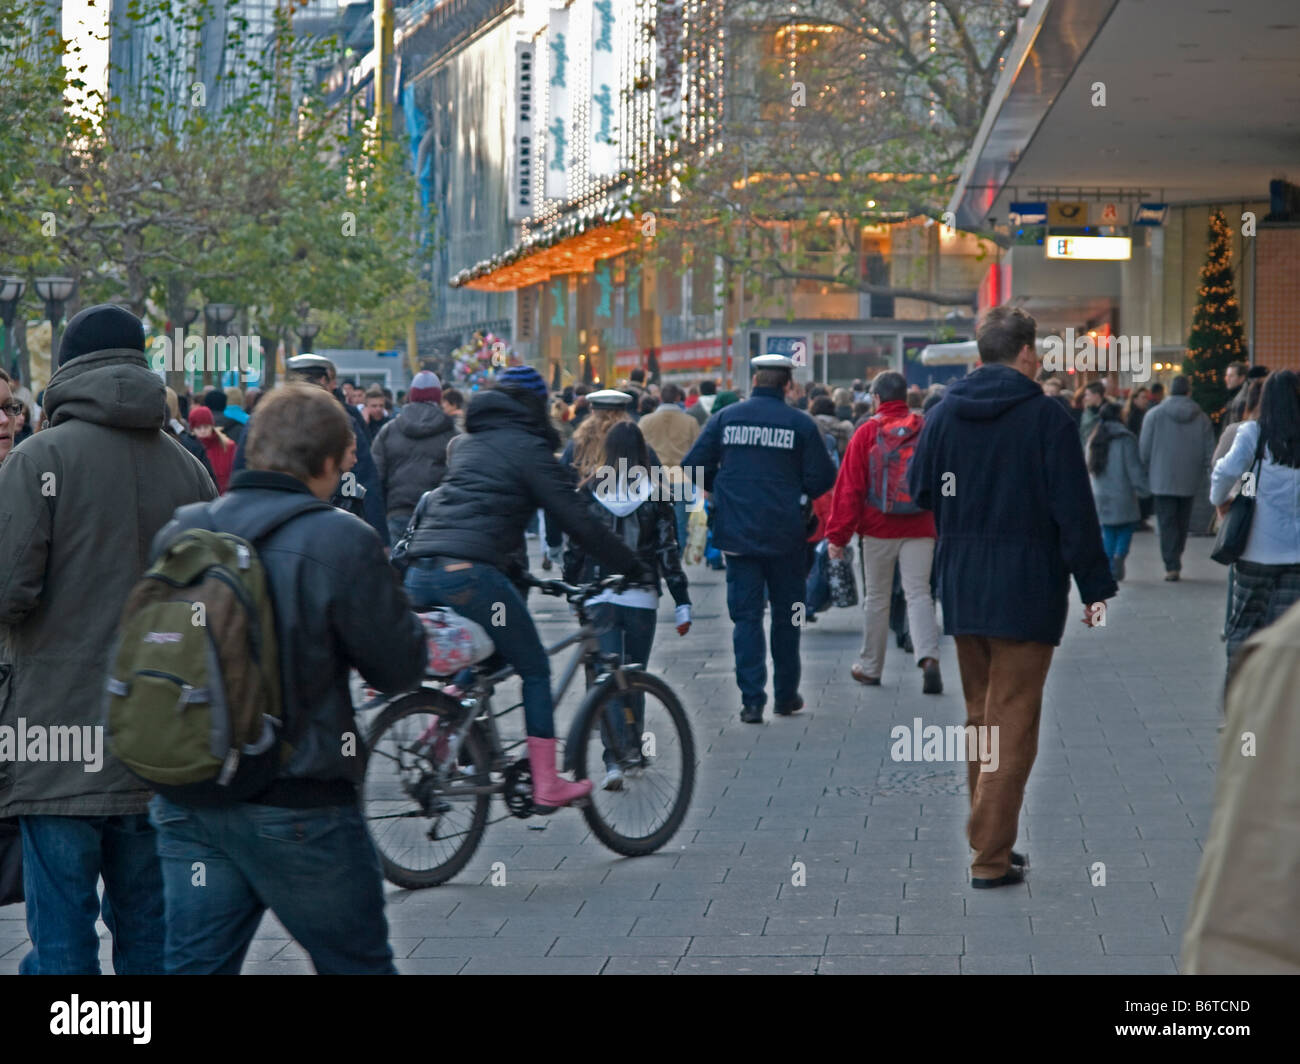 scramble in the pedestrian area in the shopping street Zeil in the city of Frankfurt am Main - Stock Image